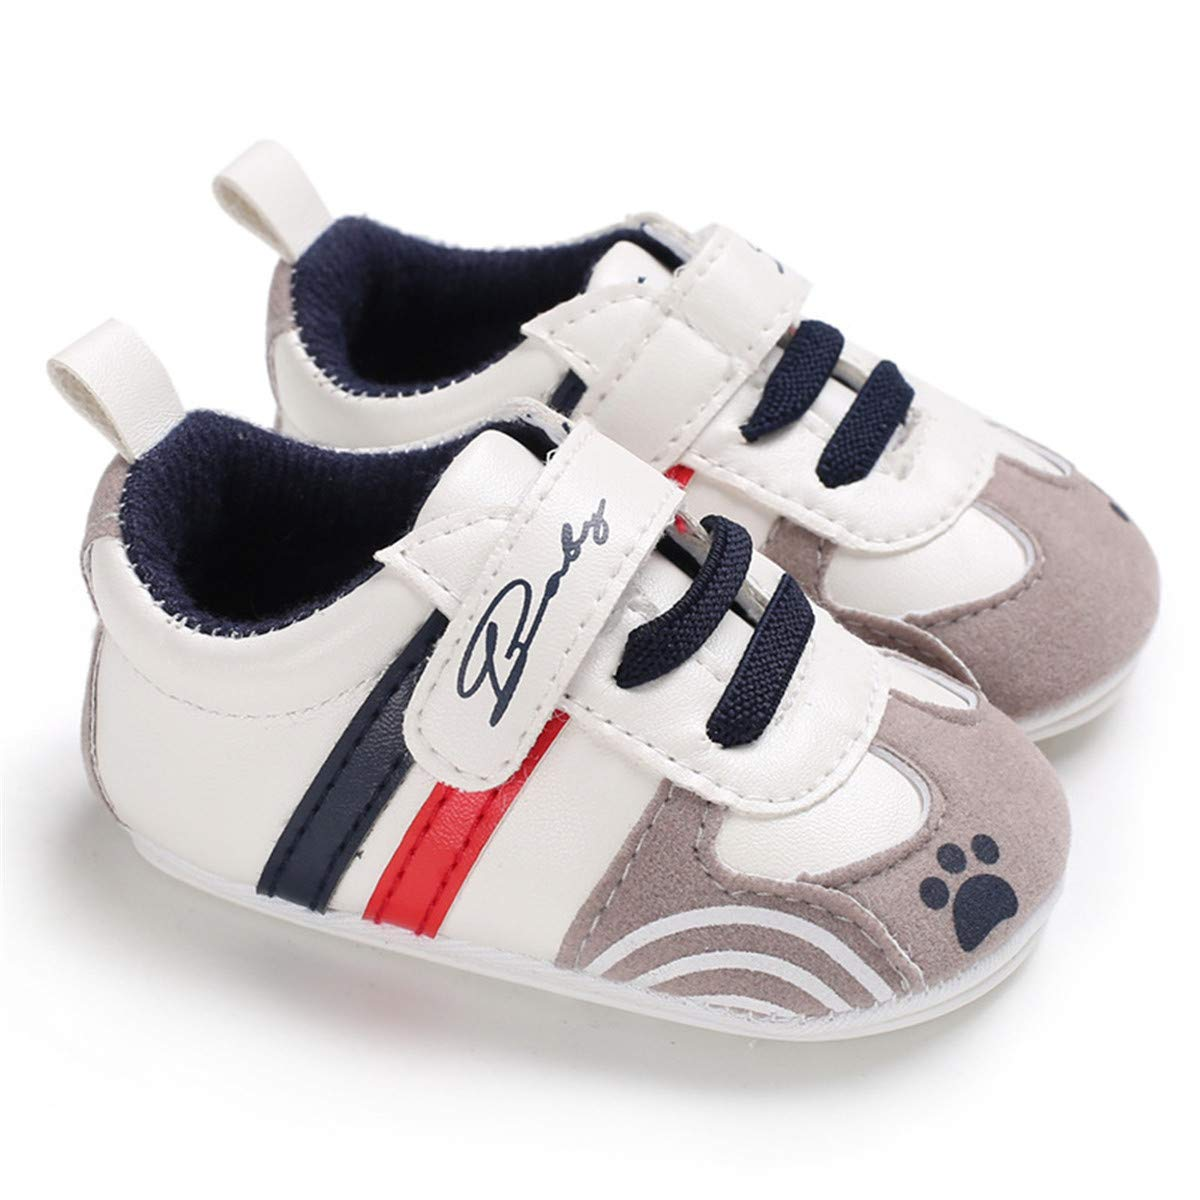 Baby Boys Girls Sneakers Non Slip Rubber Sole Infant Toddler First Walker Outdoor Tennis Crib Shoes 4001